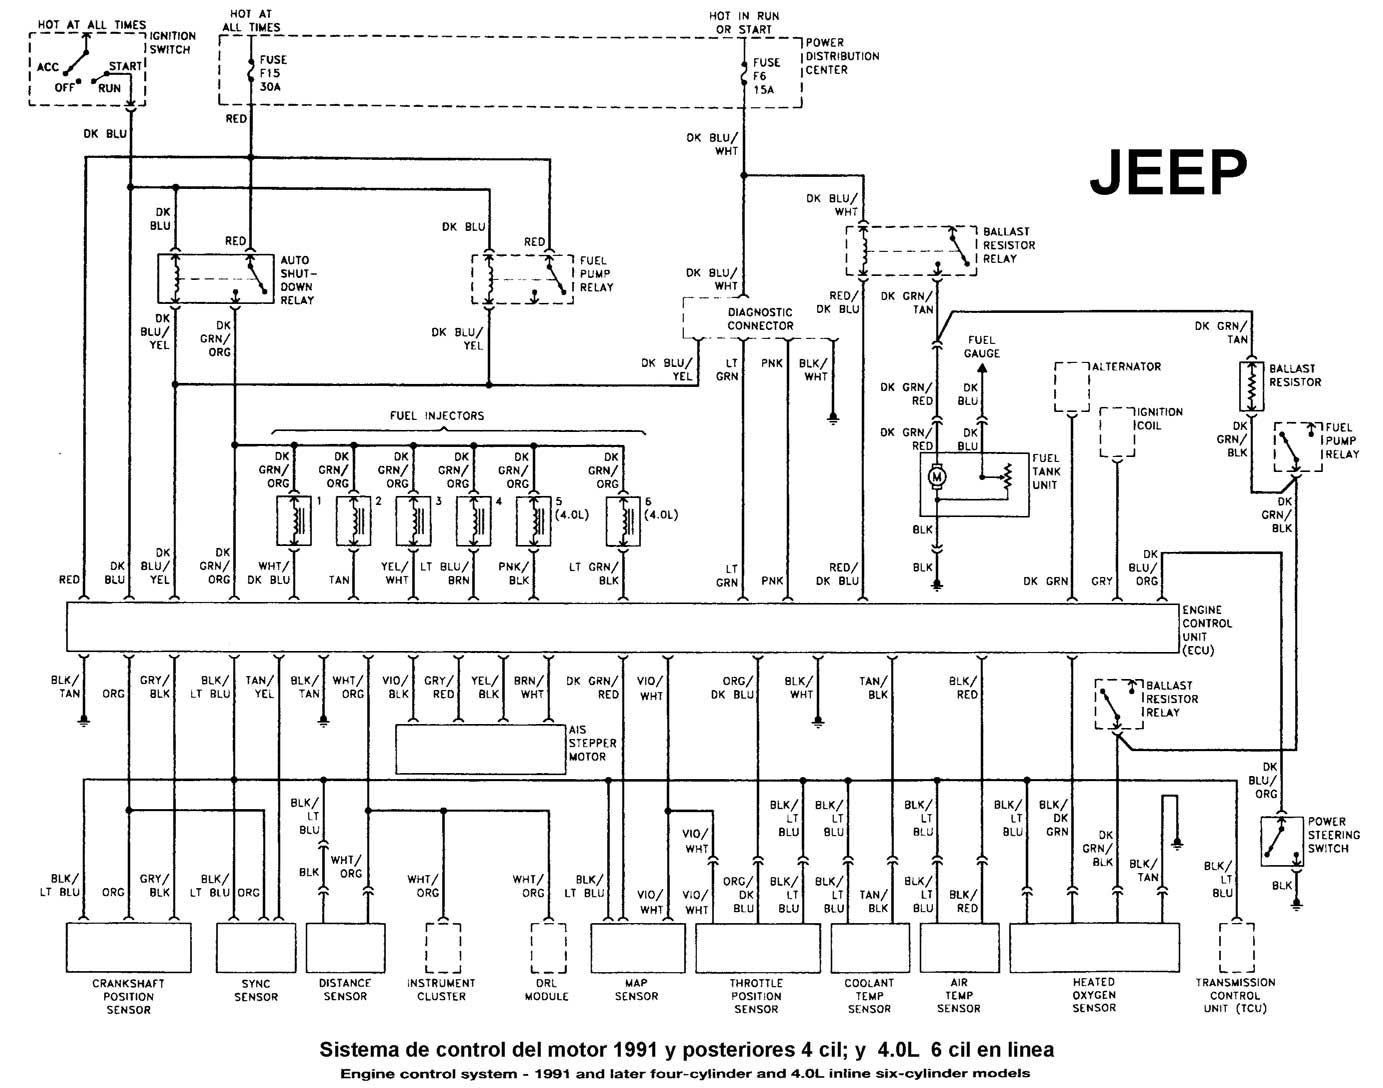 Jeep D01 on 1989 jeep grand wagoneer wiring diagram